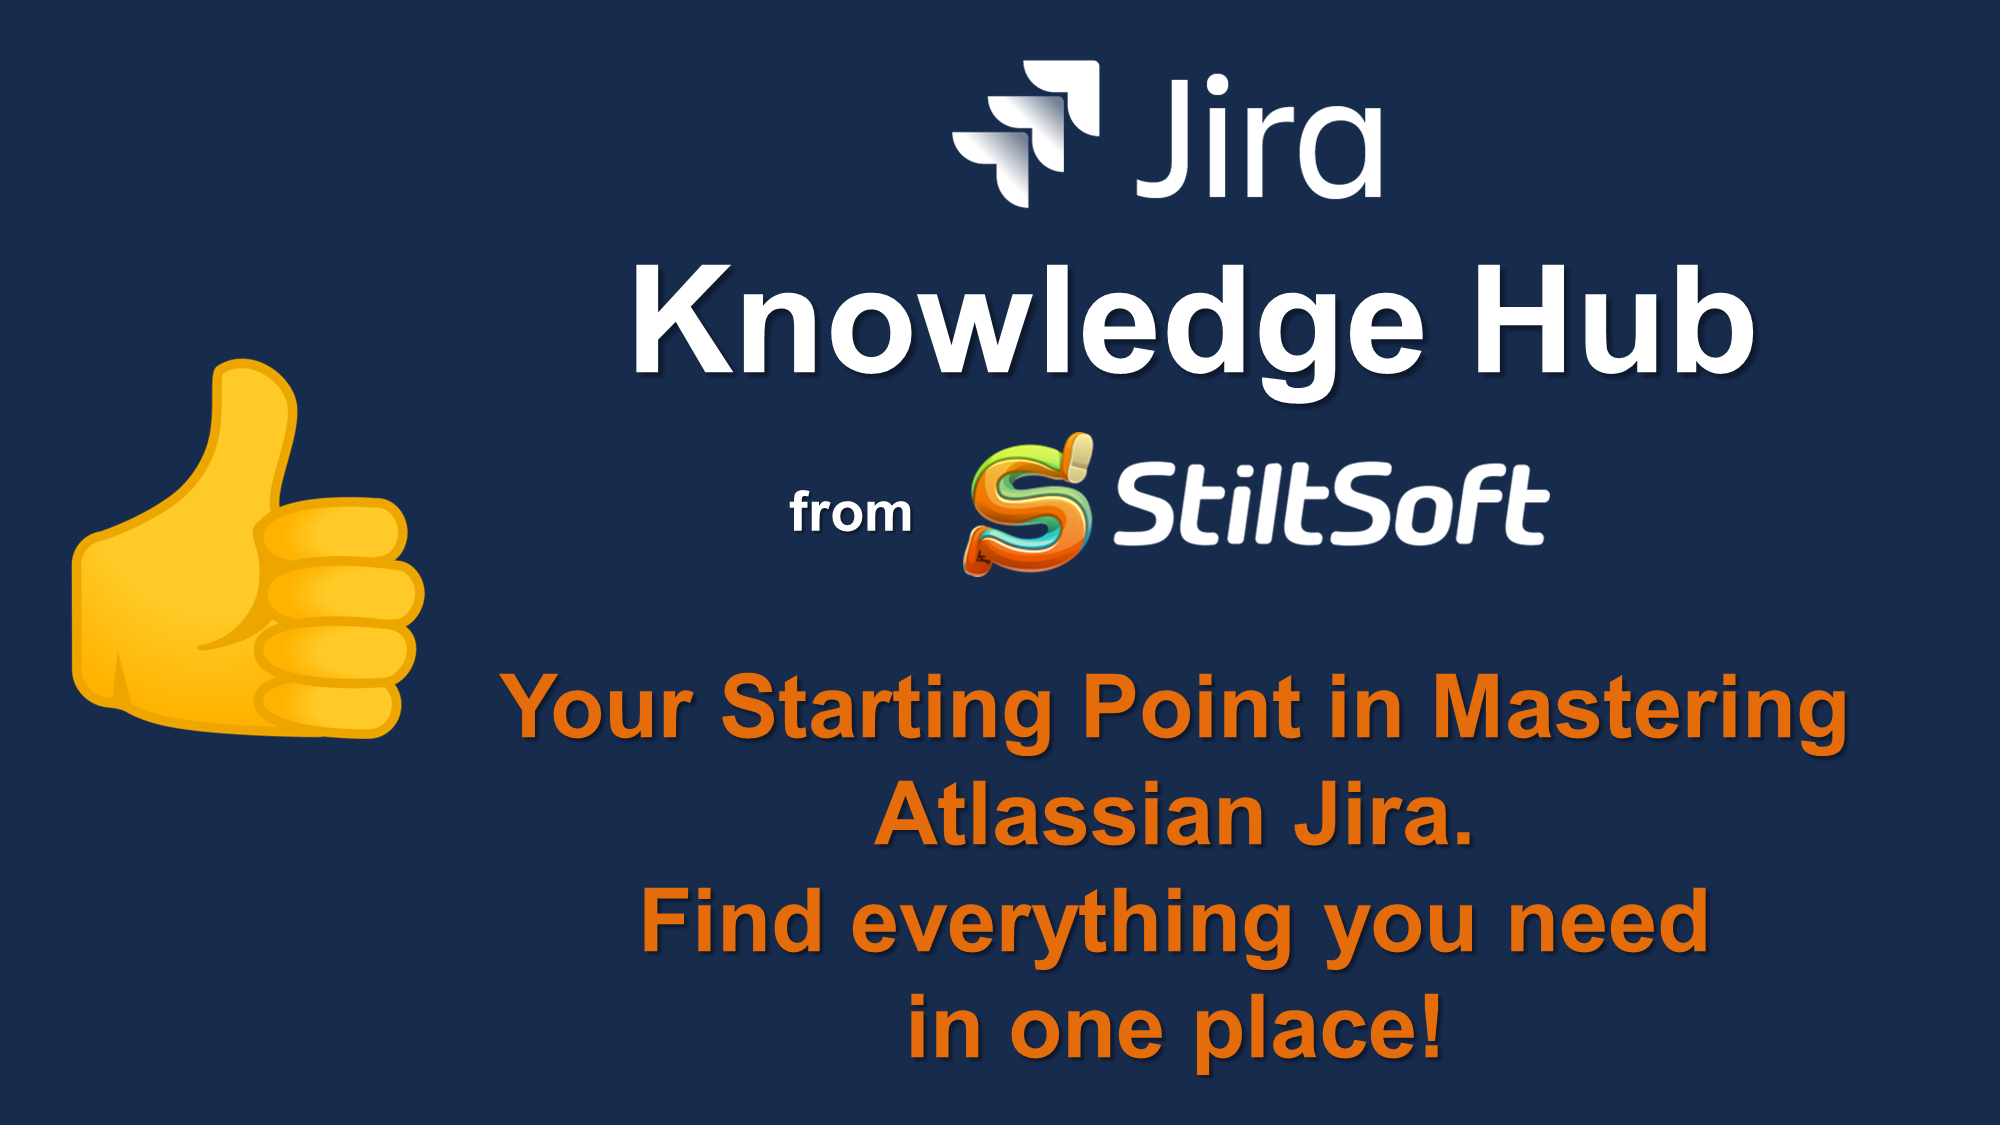 Knowledge Hub for Jira